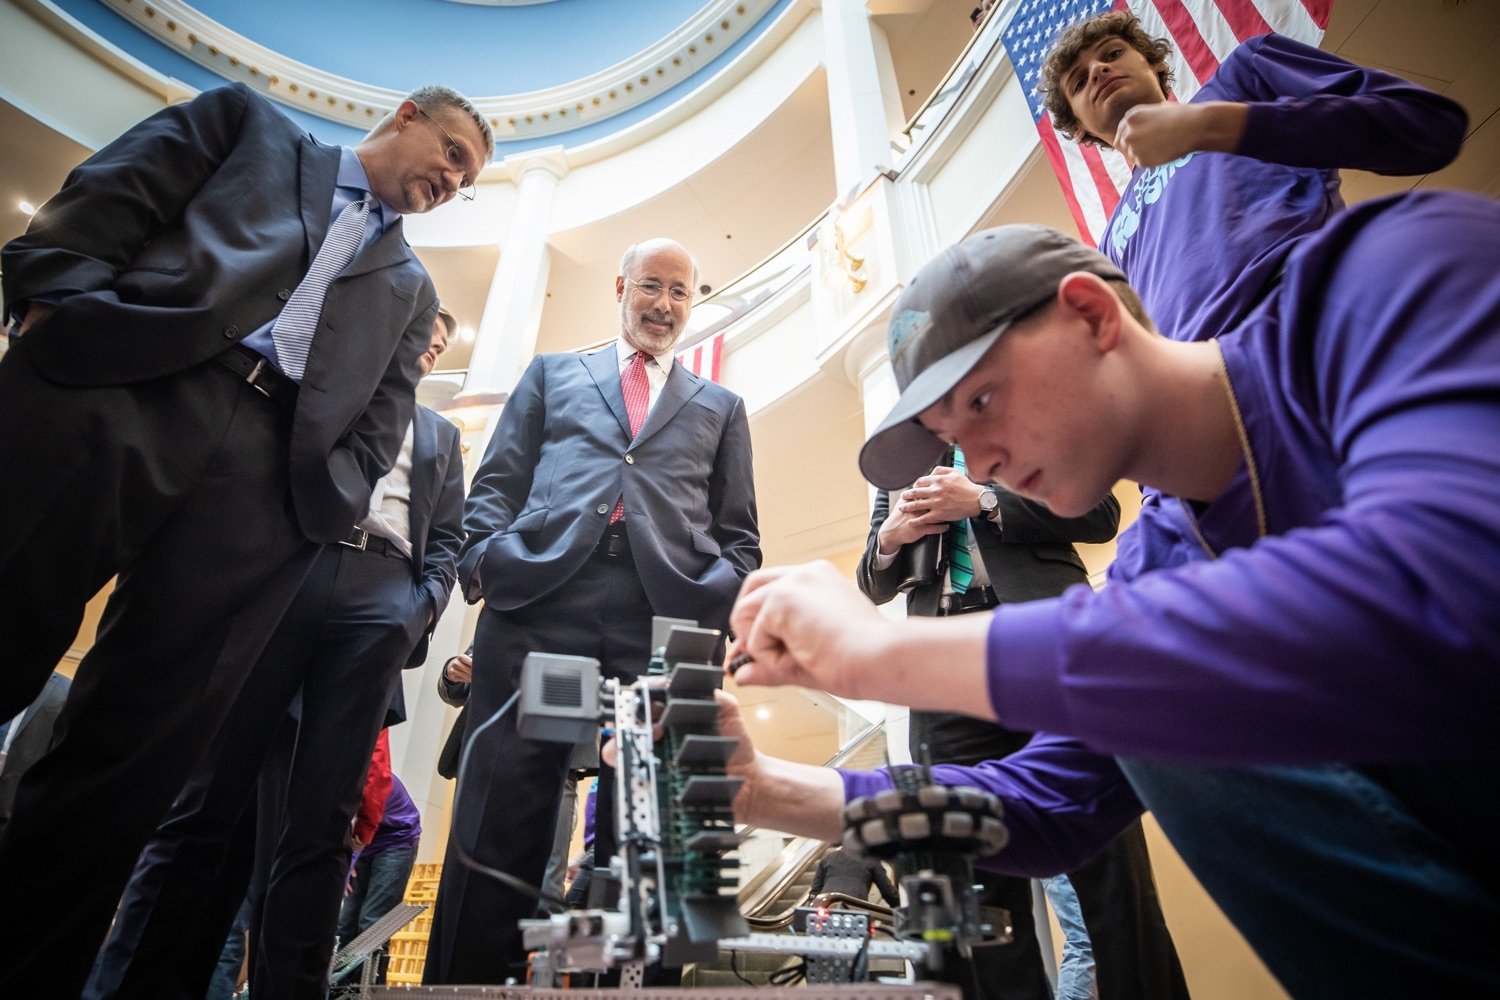 """<a href=""""https://filesource.wostreaming.net/commonwealthofpa/photo/17587_gov_pasmart_rural_robotics_dz_014.jpg"""" target=""""_blank"""">⇣Download Photo<br></a>Pennsylvania Governor Tom Wolf meeting with students at the robotics demonstration.Celebrating the success of the PAsmart workforce development program to create educational opportunities at schools across the commonwealth, Governor Tom Wolf welcomed more than 50 students from the Pennsylvania Rural Robotics Initiative to the Capitol today. The students from nine western Pennsylvania school districts showcased their skills in coding, robotics and drone technology. The Wolf administration awarded the initiative a $299,000 PAsmart Advancing Grant earlier this year. Harrisburg, PA  Tuesday, November 12, 2019"""